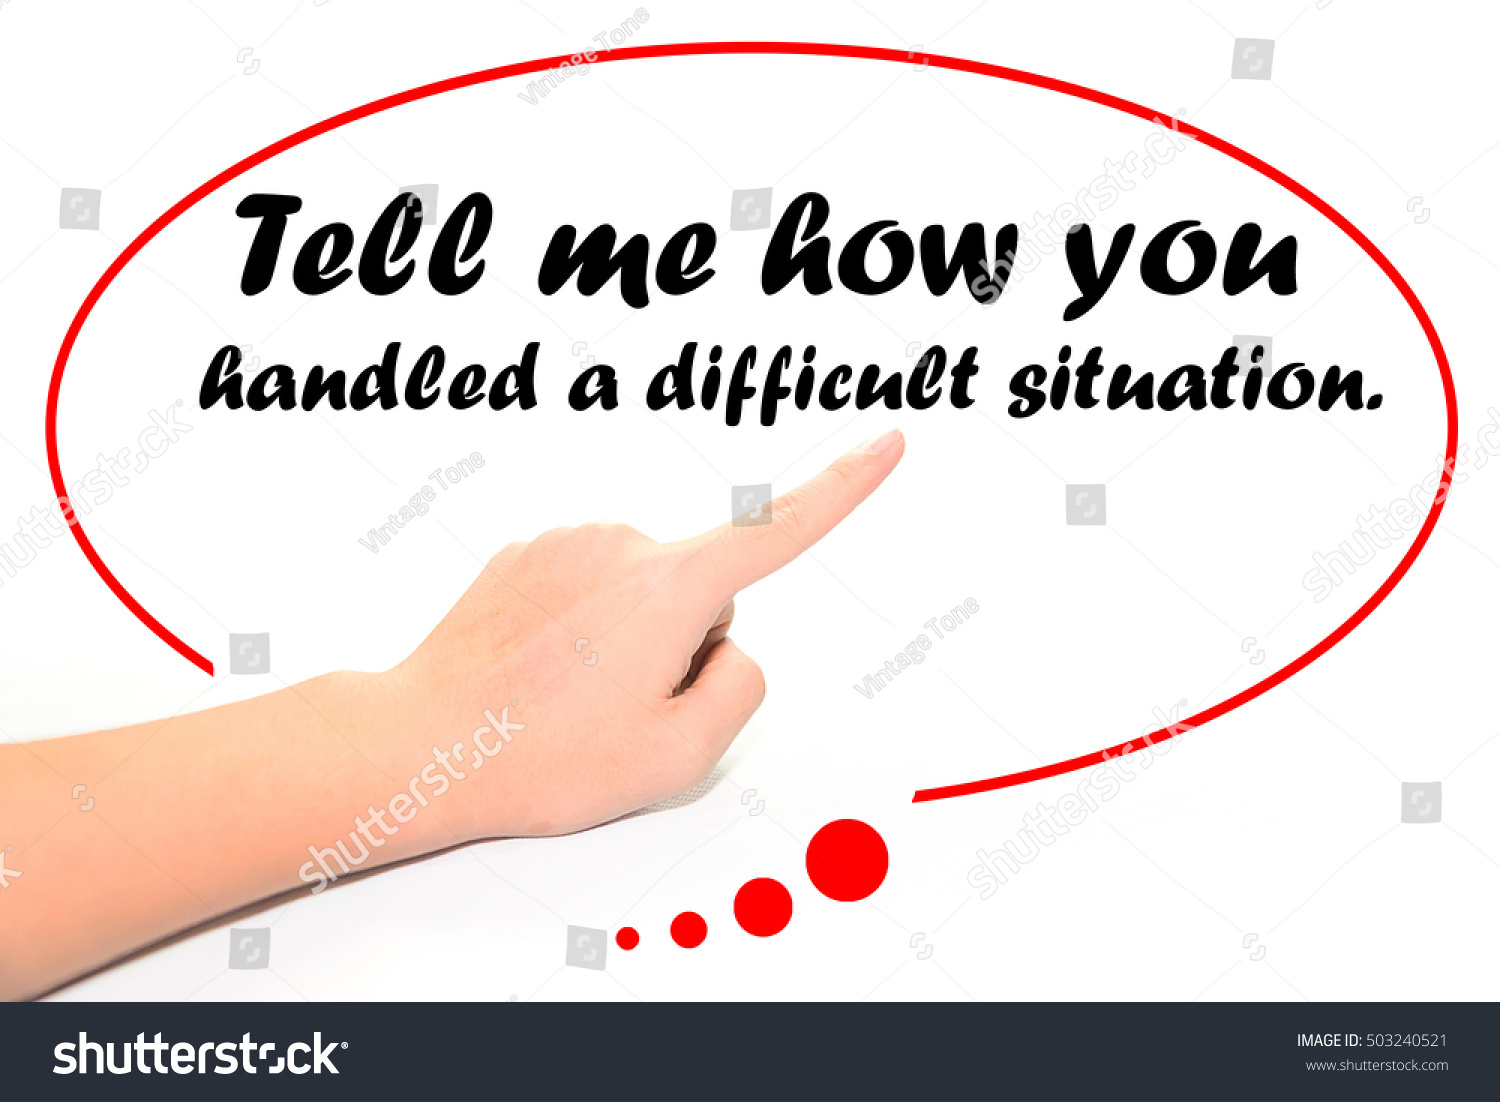 describe a time when you were faced with a difficult situation and how did you handle it How to describe a difficult problem and how you dealt with it on an interview - продолжительность: 2:34 don georgevich 283 874 просмотра.